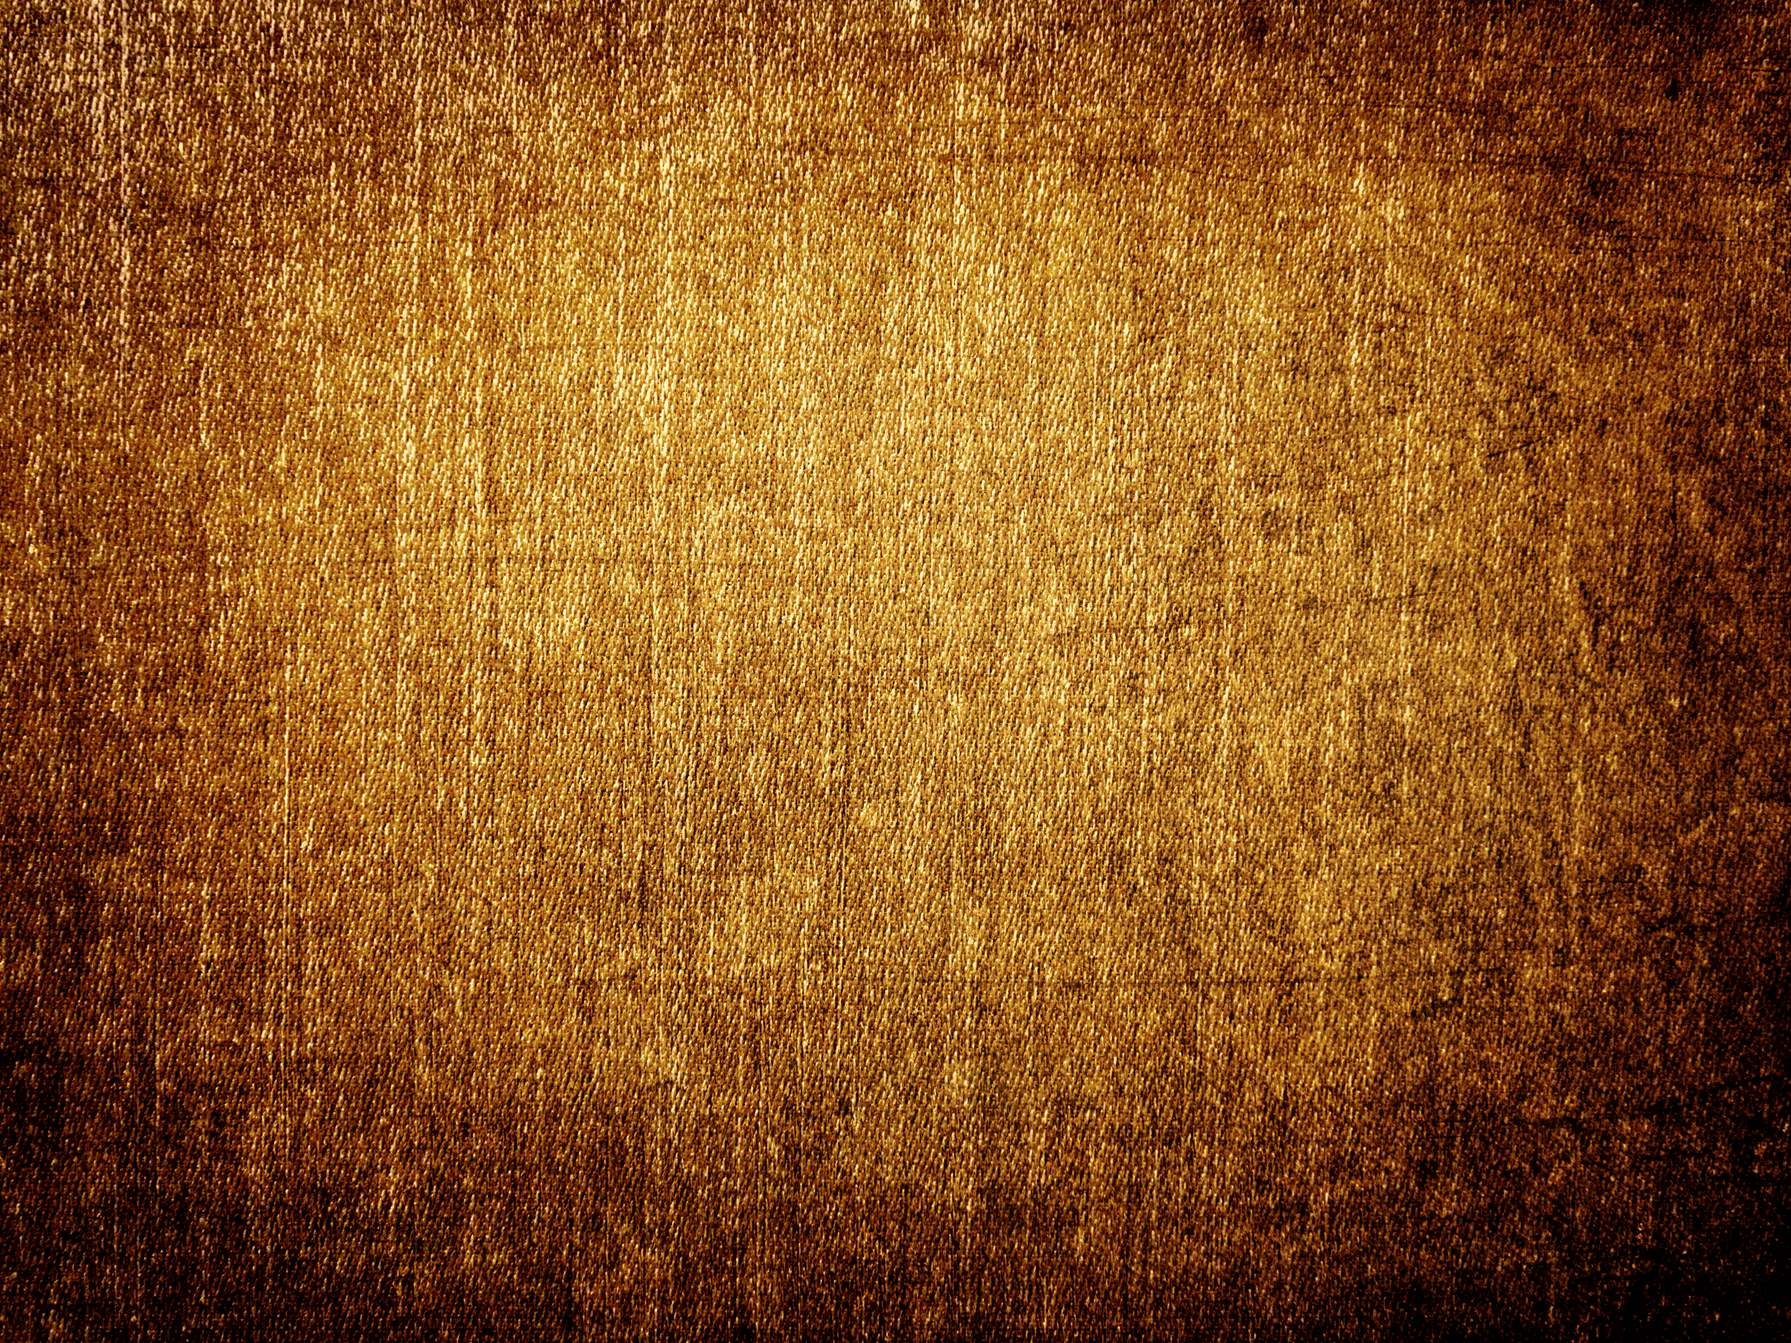 Canvas Texture Background | www.imgkid.com - The Image Kid